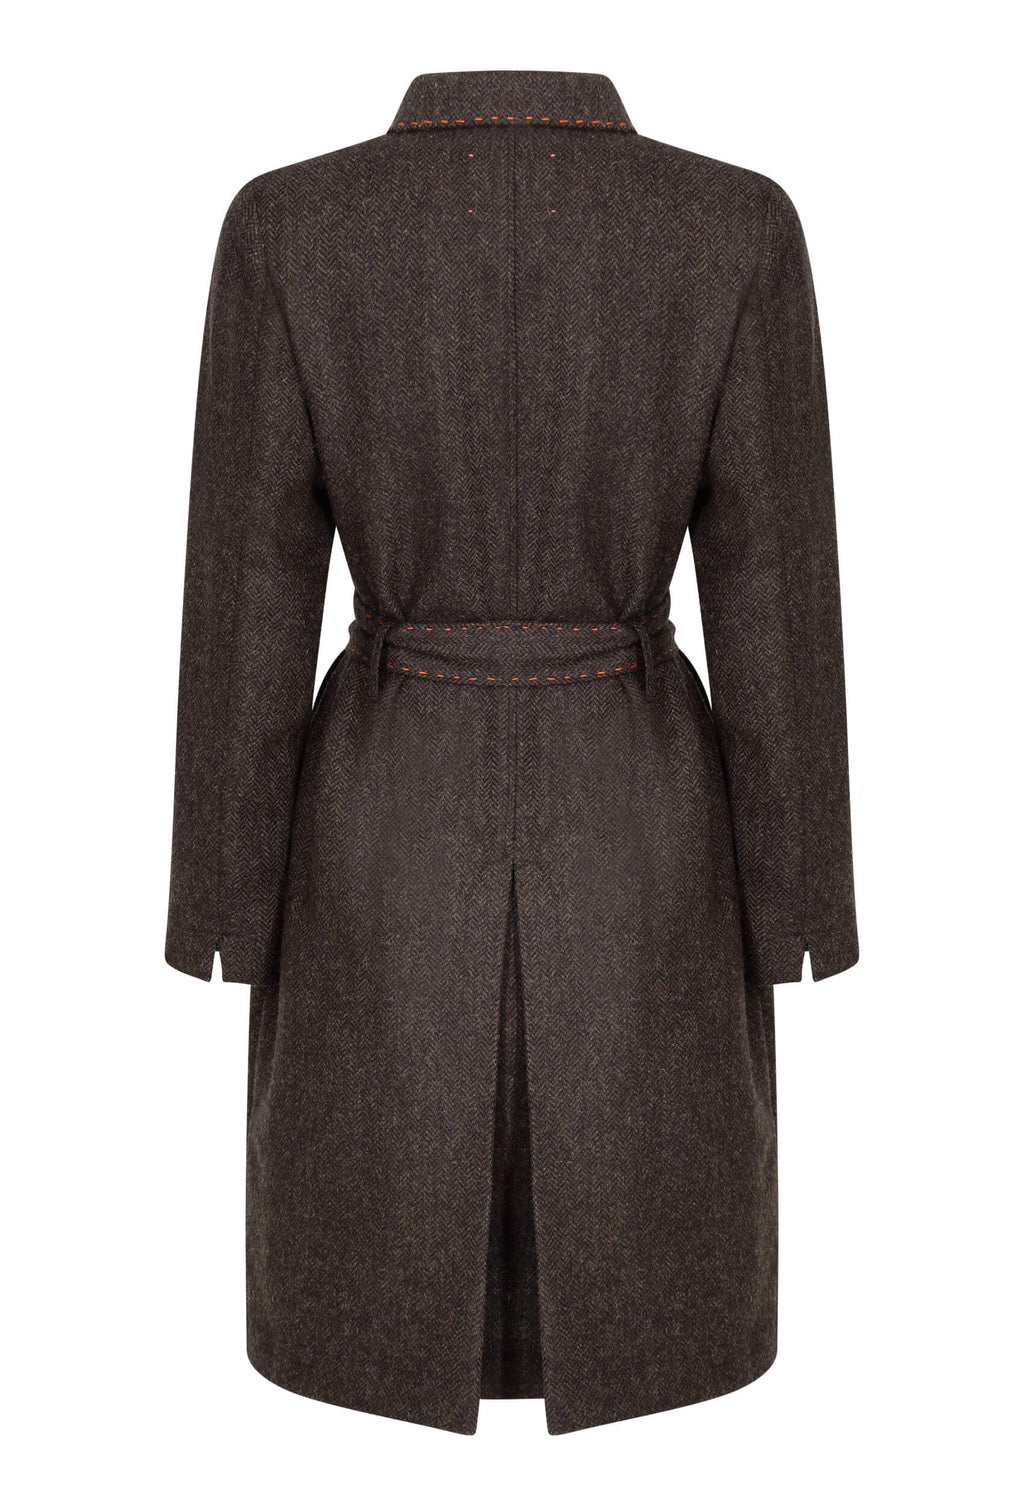 chocolate-brown-herringbone-tweed-coat-dress-made-in-britain-back